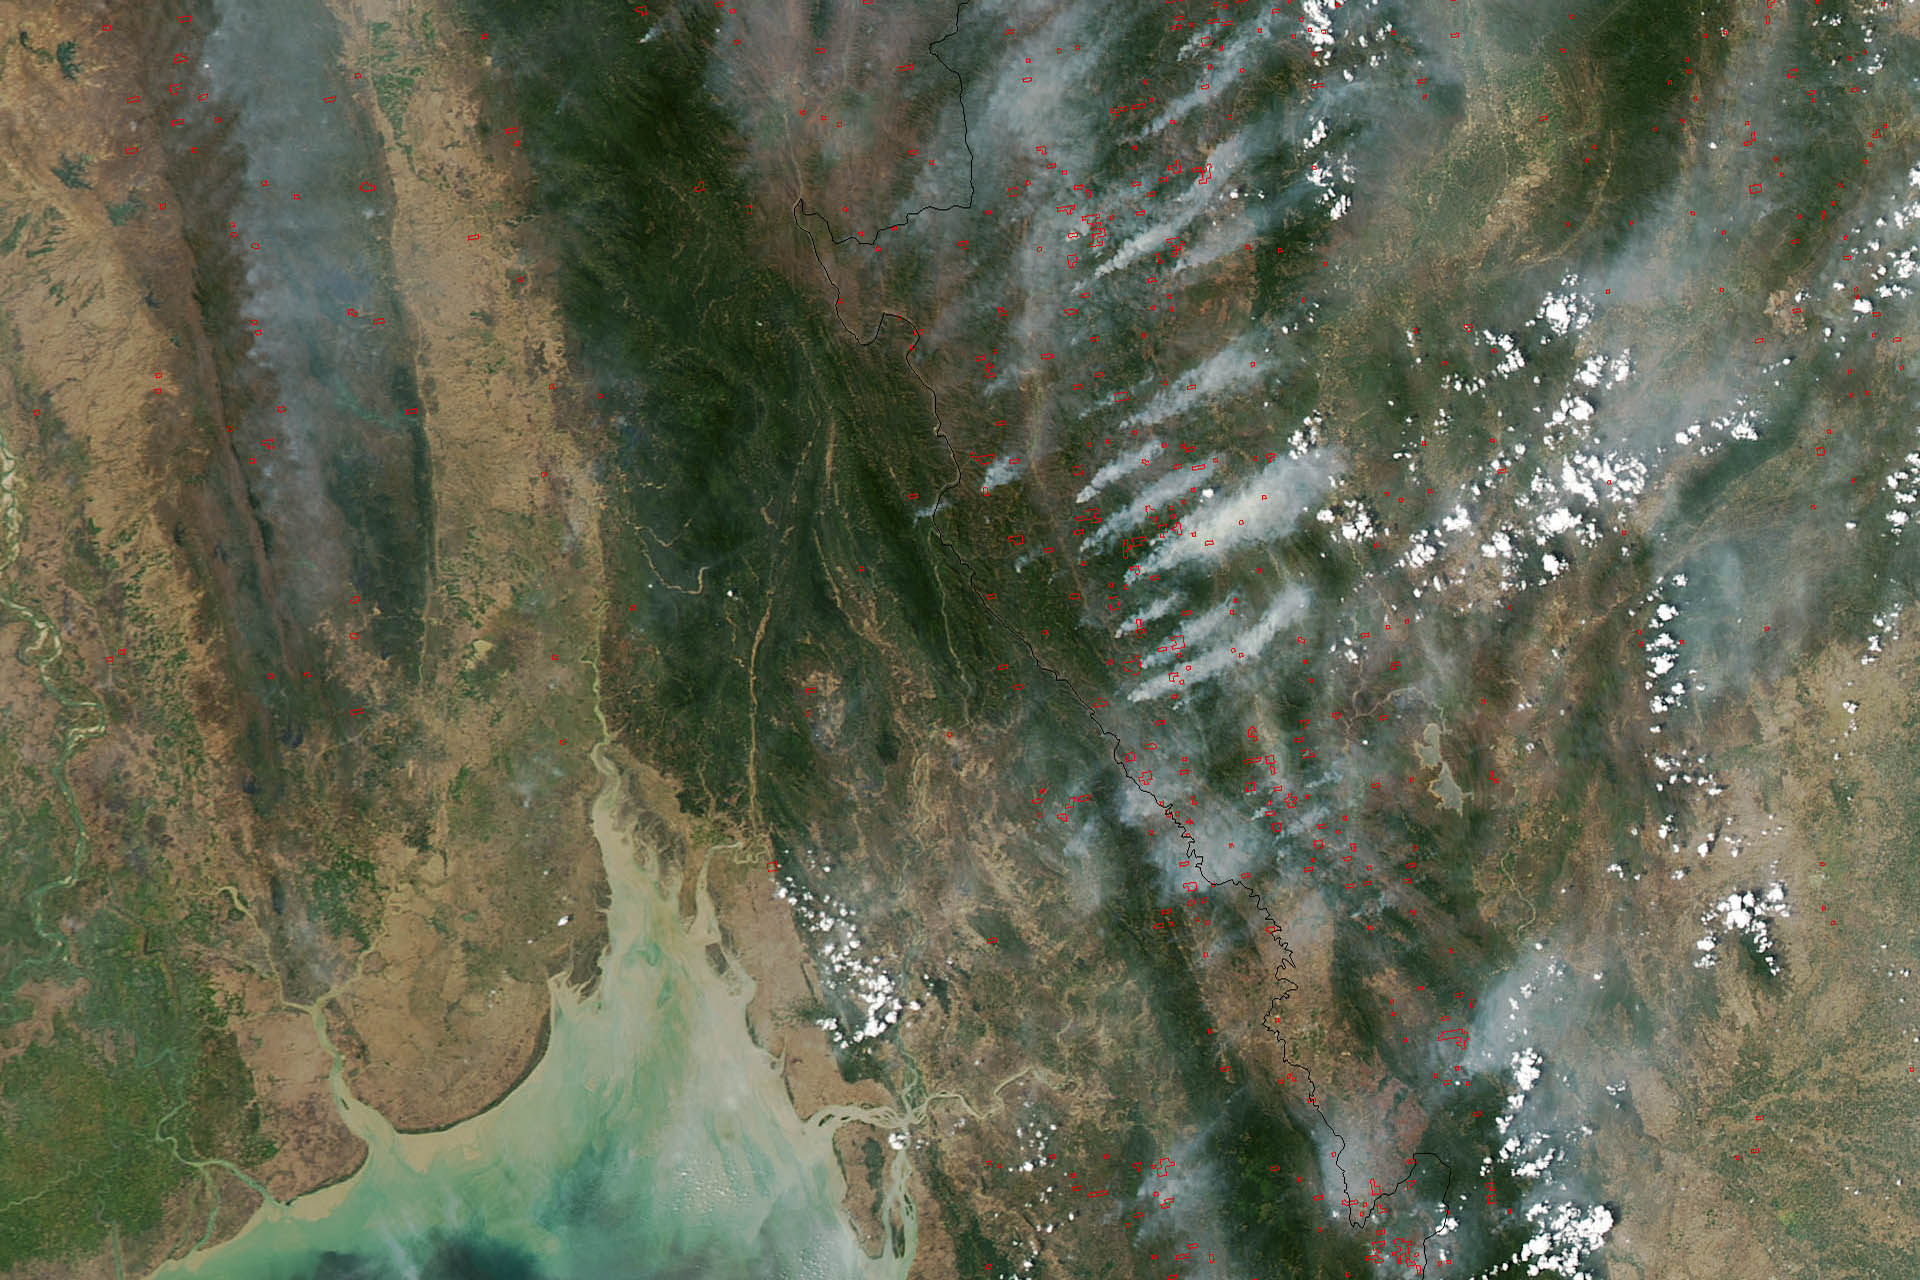 This image of fires burning throughout Burma (Myanmar) and Thailand was acquired on March 22, 2013, by the Moderate Resolution Imaging Spectroradiometer (MODIS) on NASA's Aqua satellite. MODIS detects fires not from visible smoke plumes, but from thermal infrared energy radiating from the land surface. The heat is invisible in images like this, but the locations where MODIS detected fires are labeled with red dots. (Source: NASA)